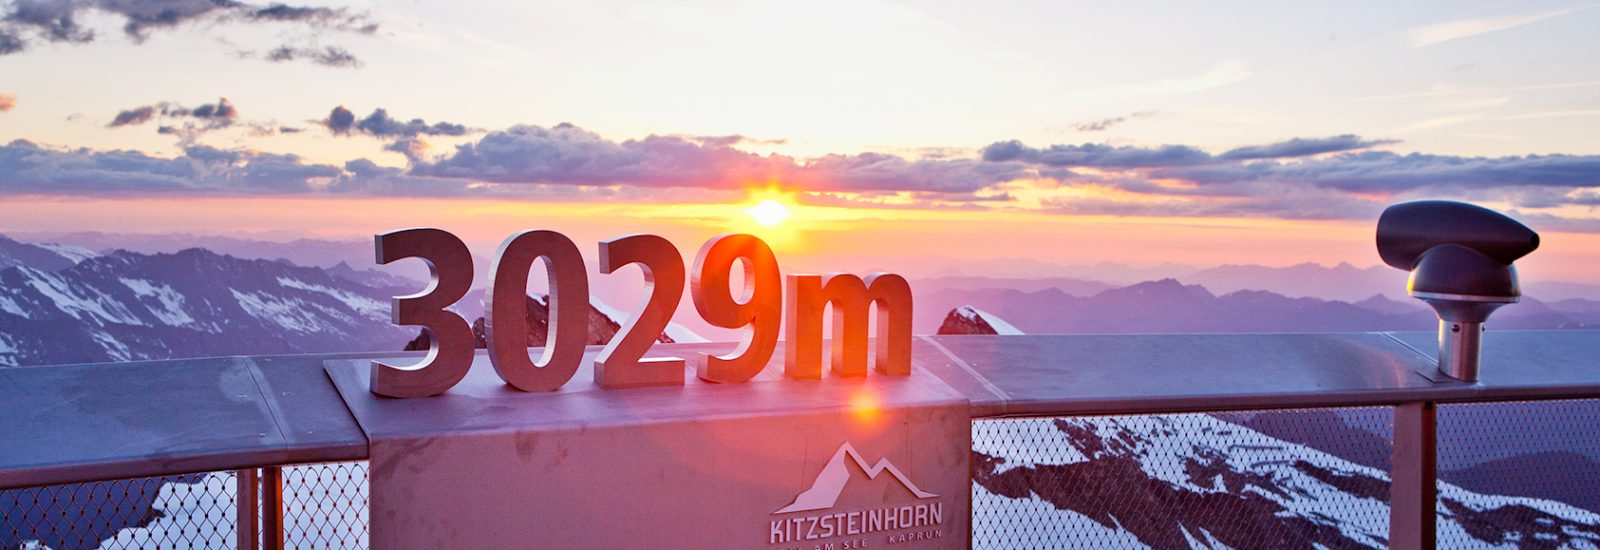 www.kitzsteinhorn.at